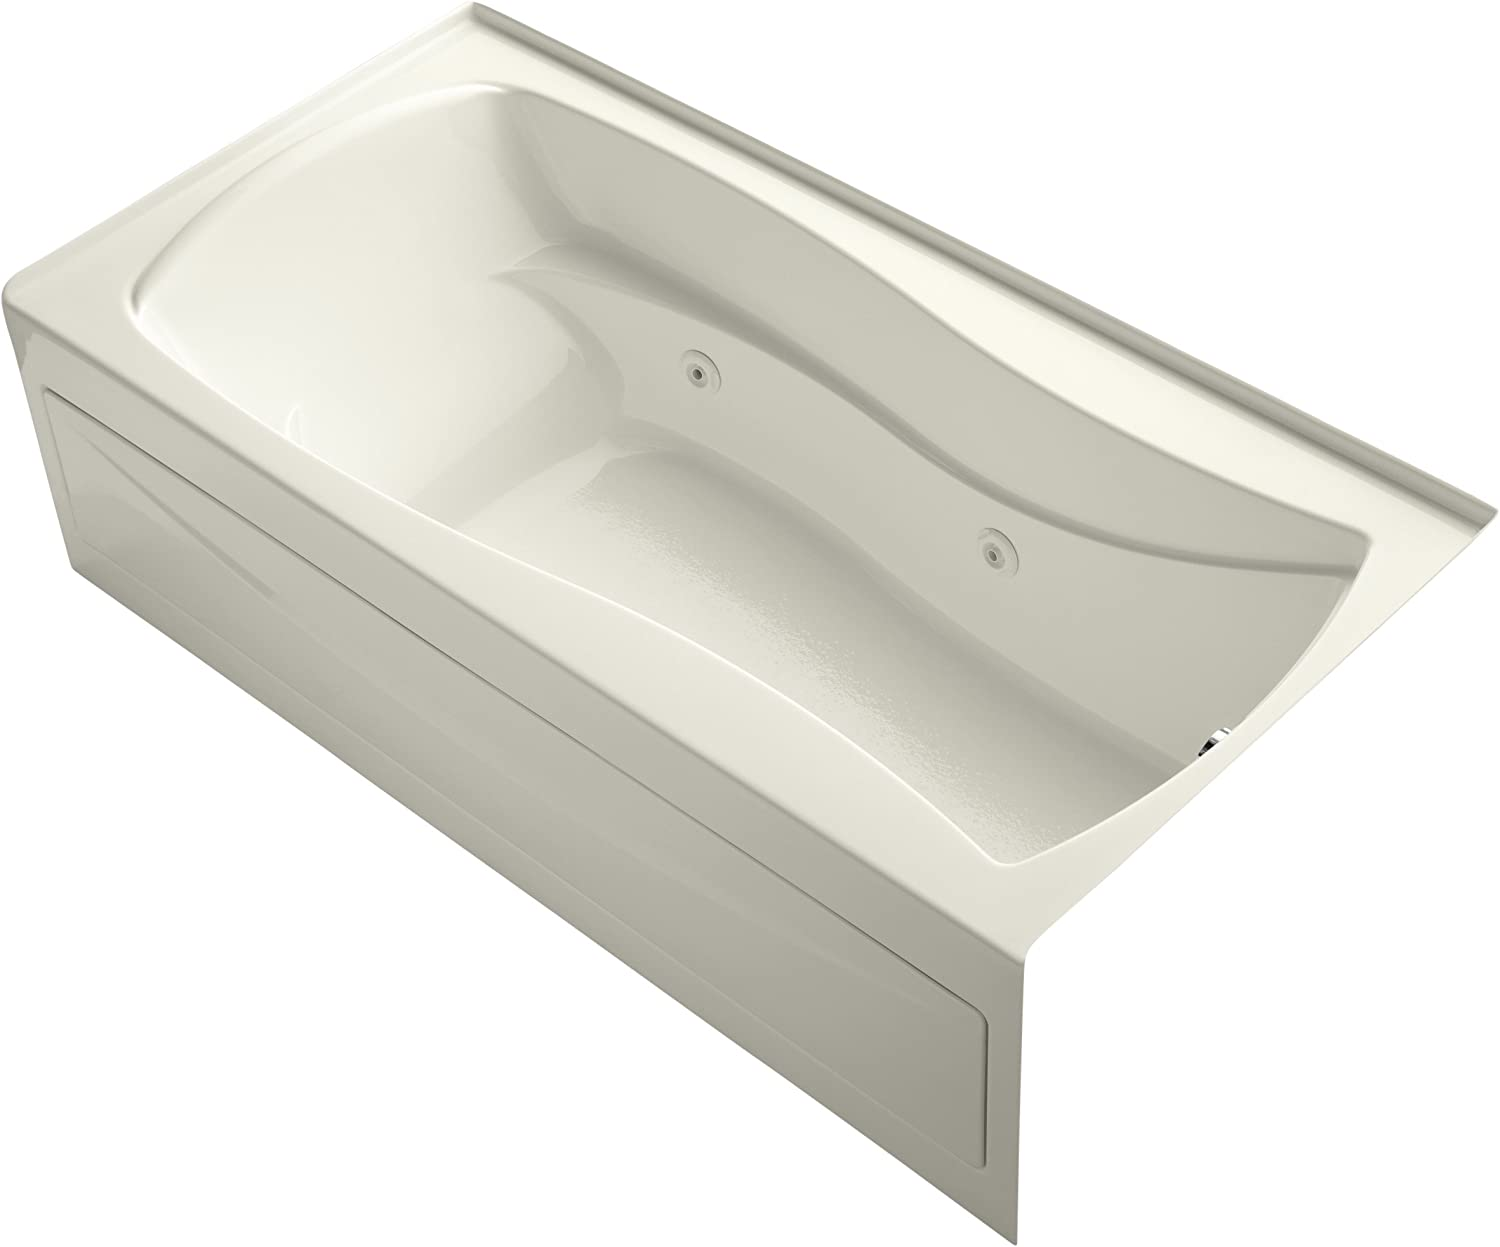 KOHLER K-1257-RA-96 Mariposa 72-Inch X 36-Inch Alcove Whirlpool with Integral Apron, Tile Flange and Right-Hand Drain, Biscuit